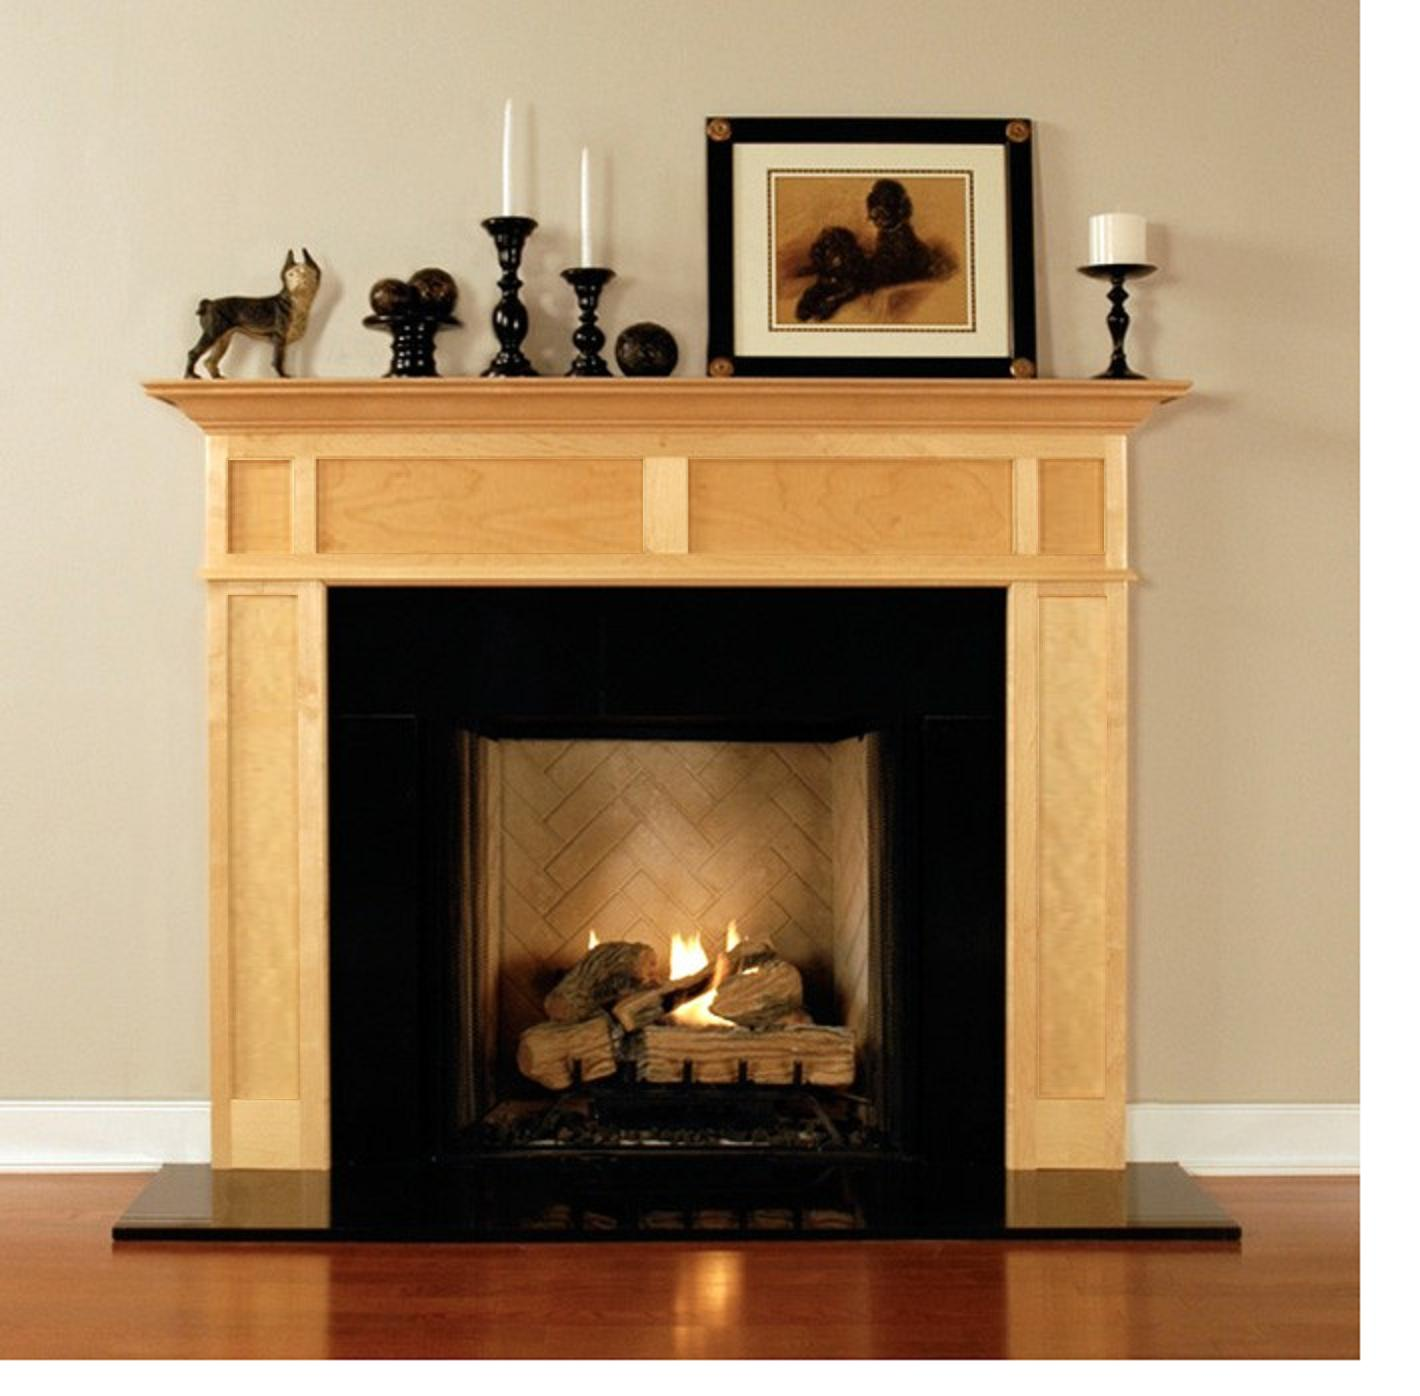 With over thirty heirloom quality fireplace mantel surround designs from which to choose